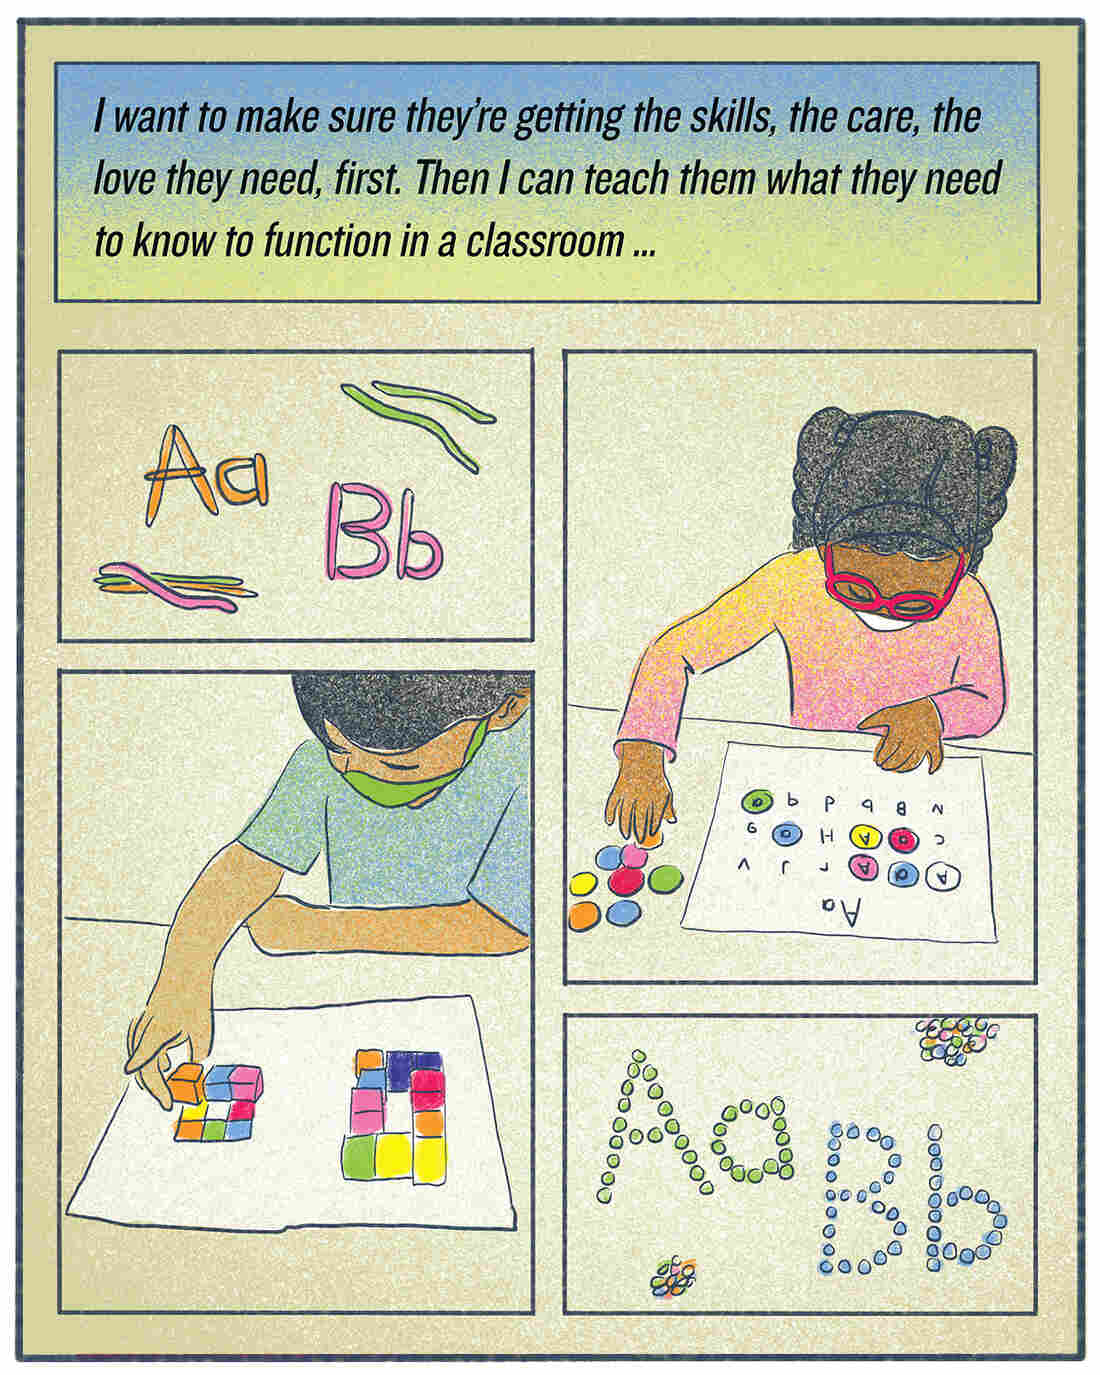 """""""I want to make sure they're getting the skills, the care, the love they need, first. Then I can teach them what they need to know to function in a classroom."""""""